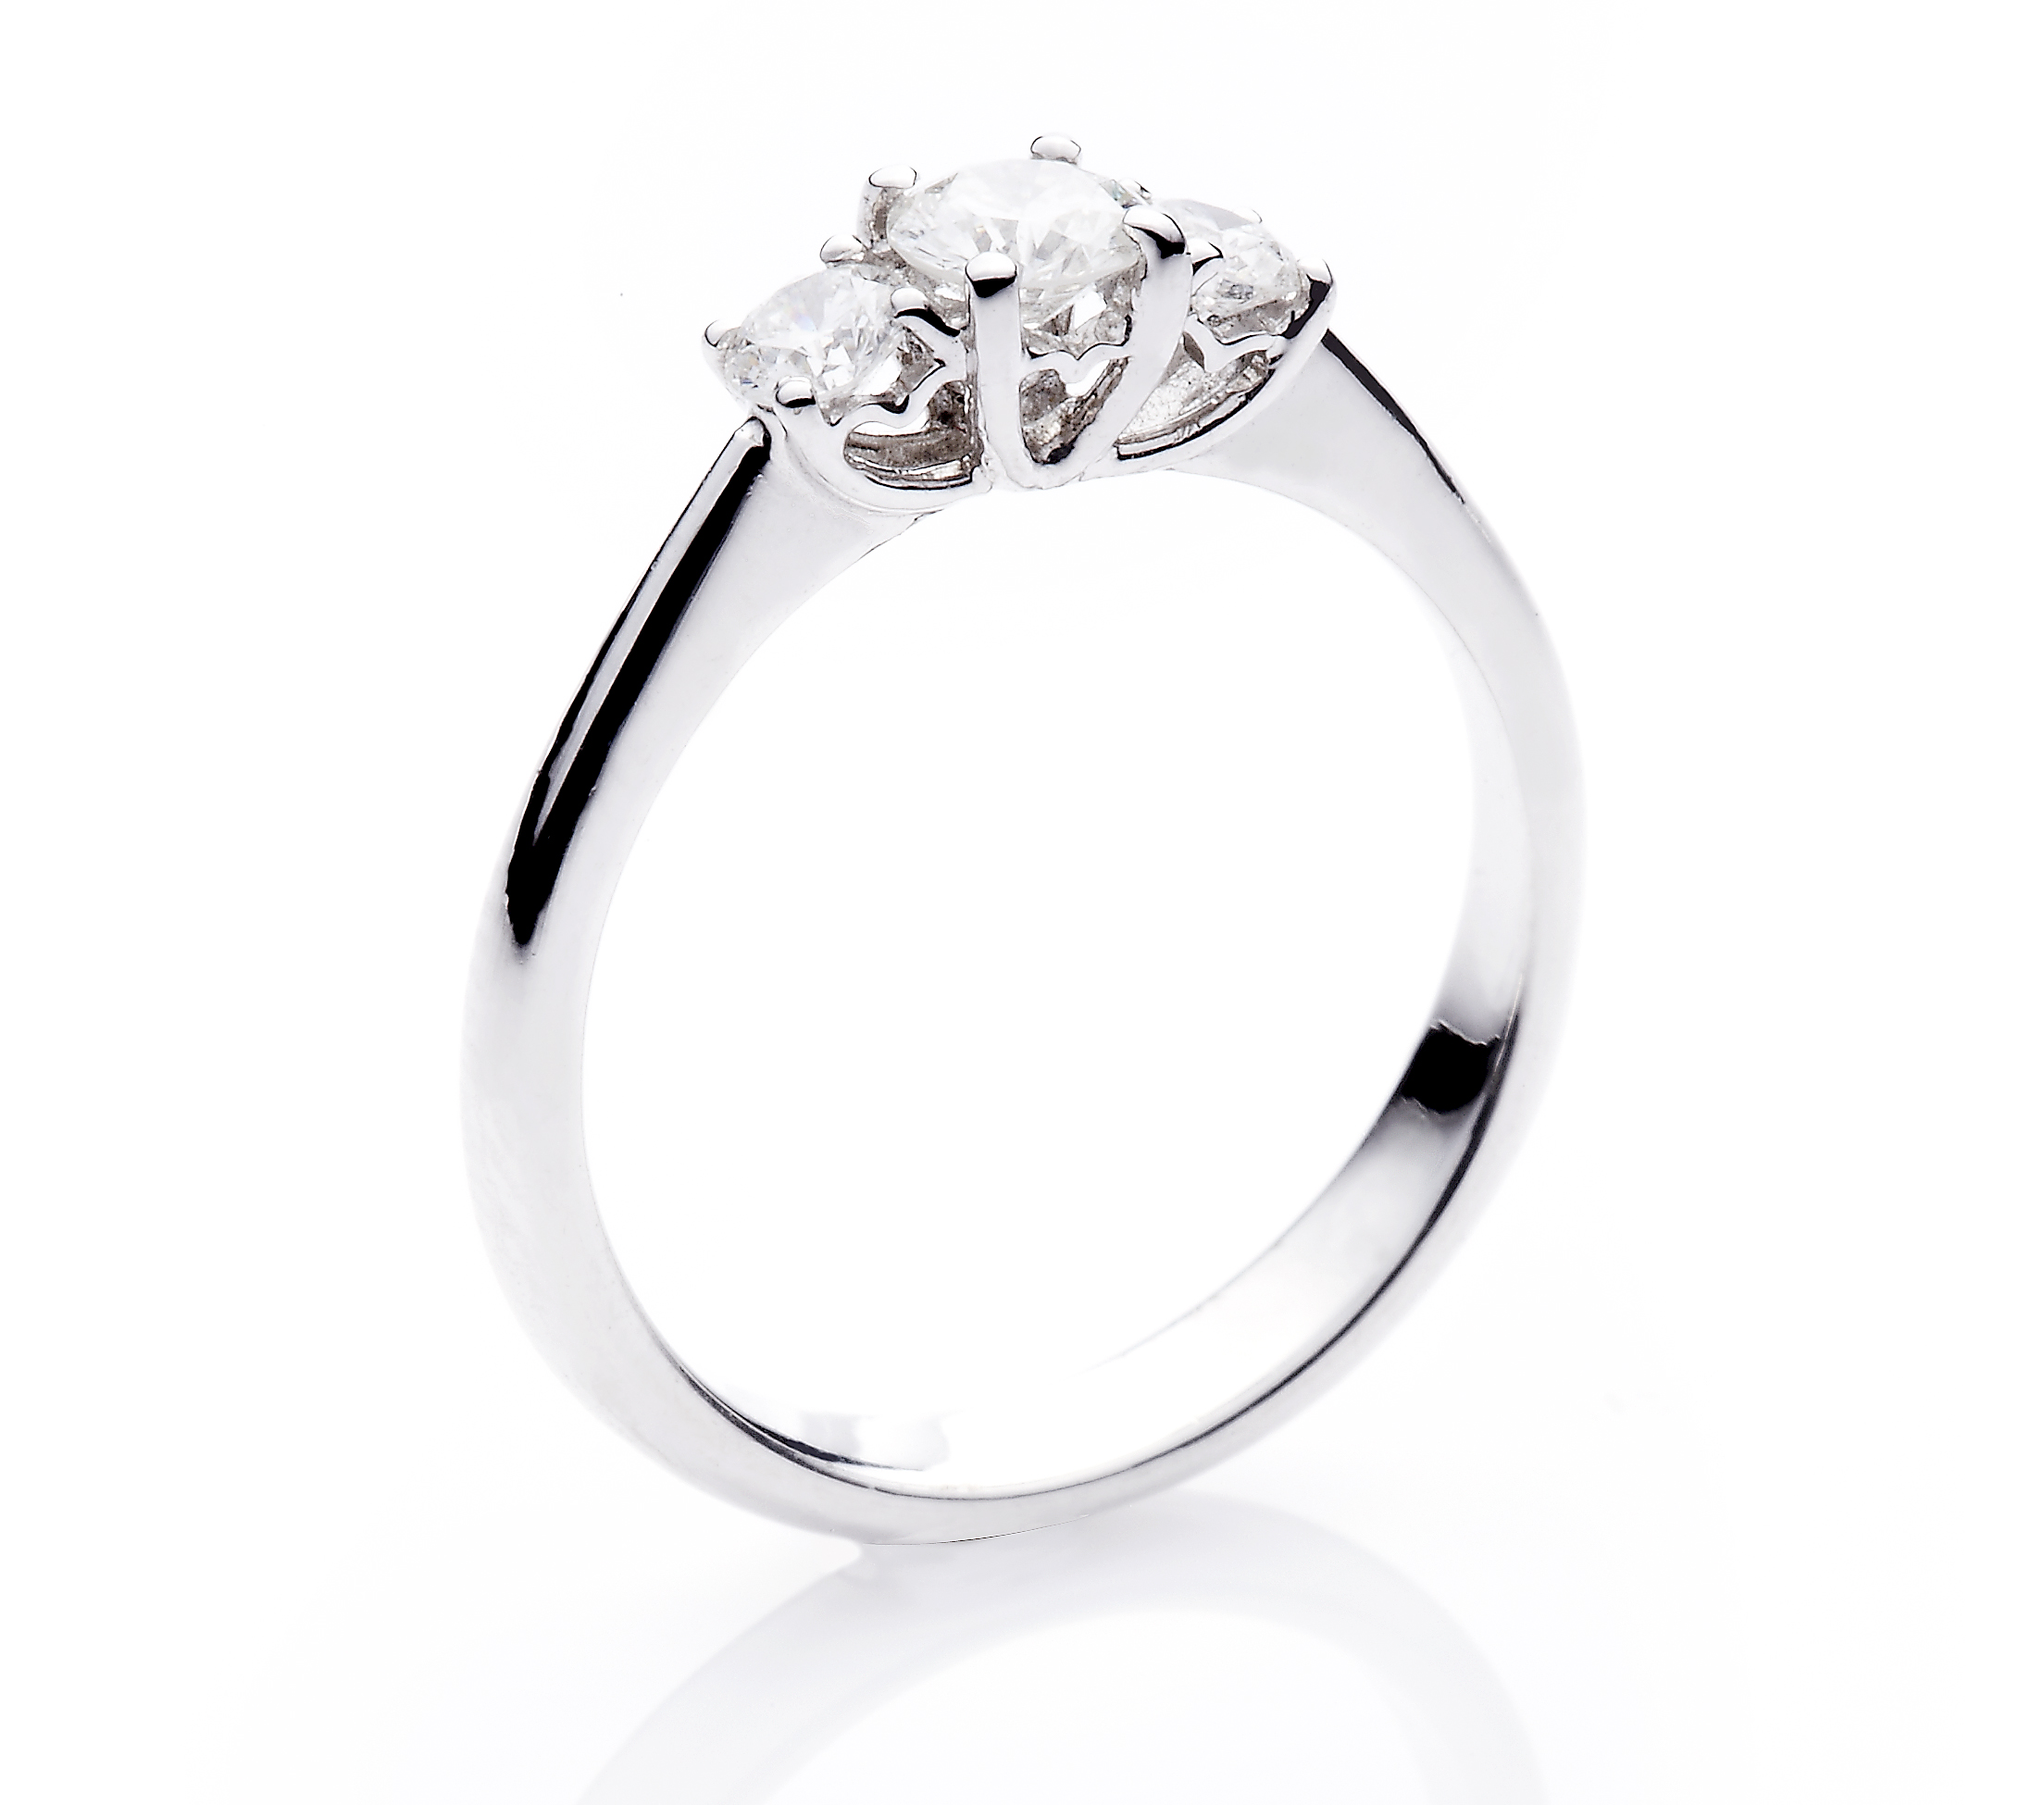 if pin simple rings the a re that bride you an to take s subtle looking for ideas be unique and ring engagement modern